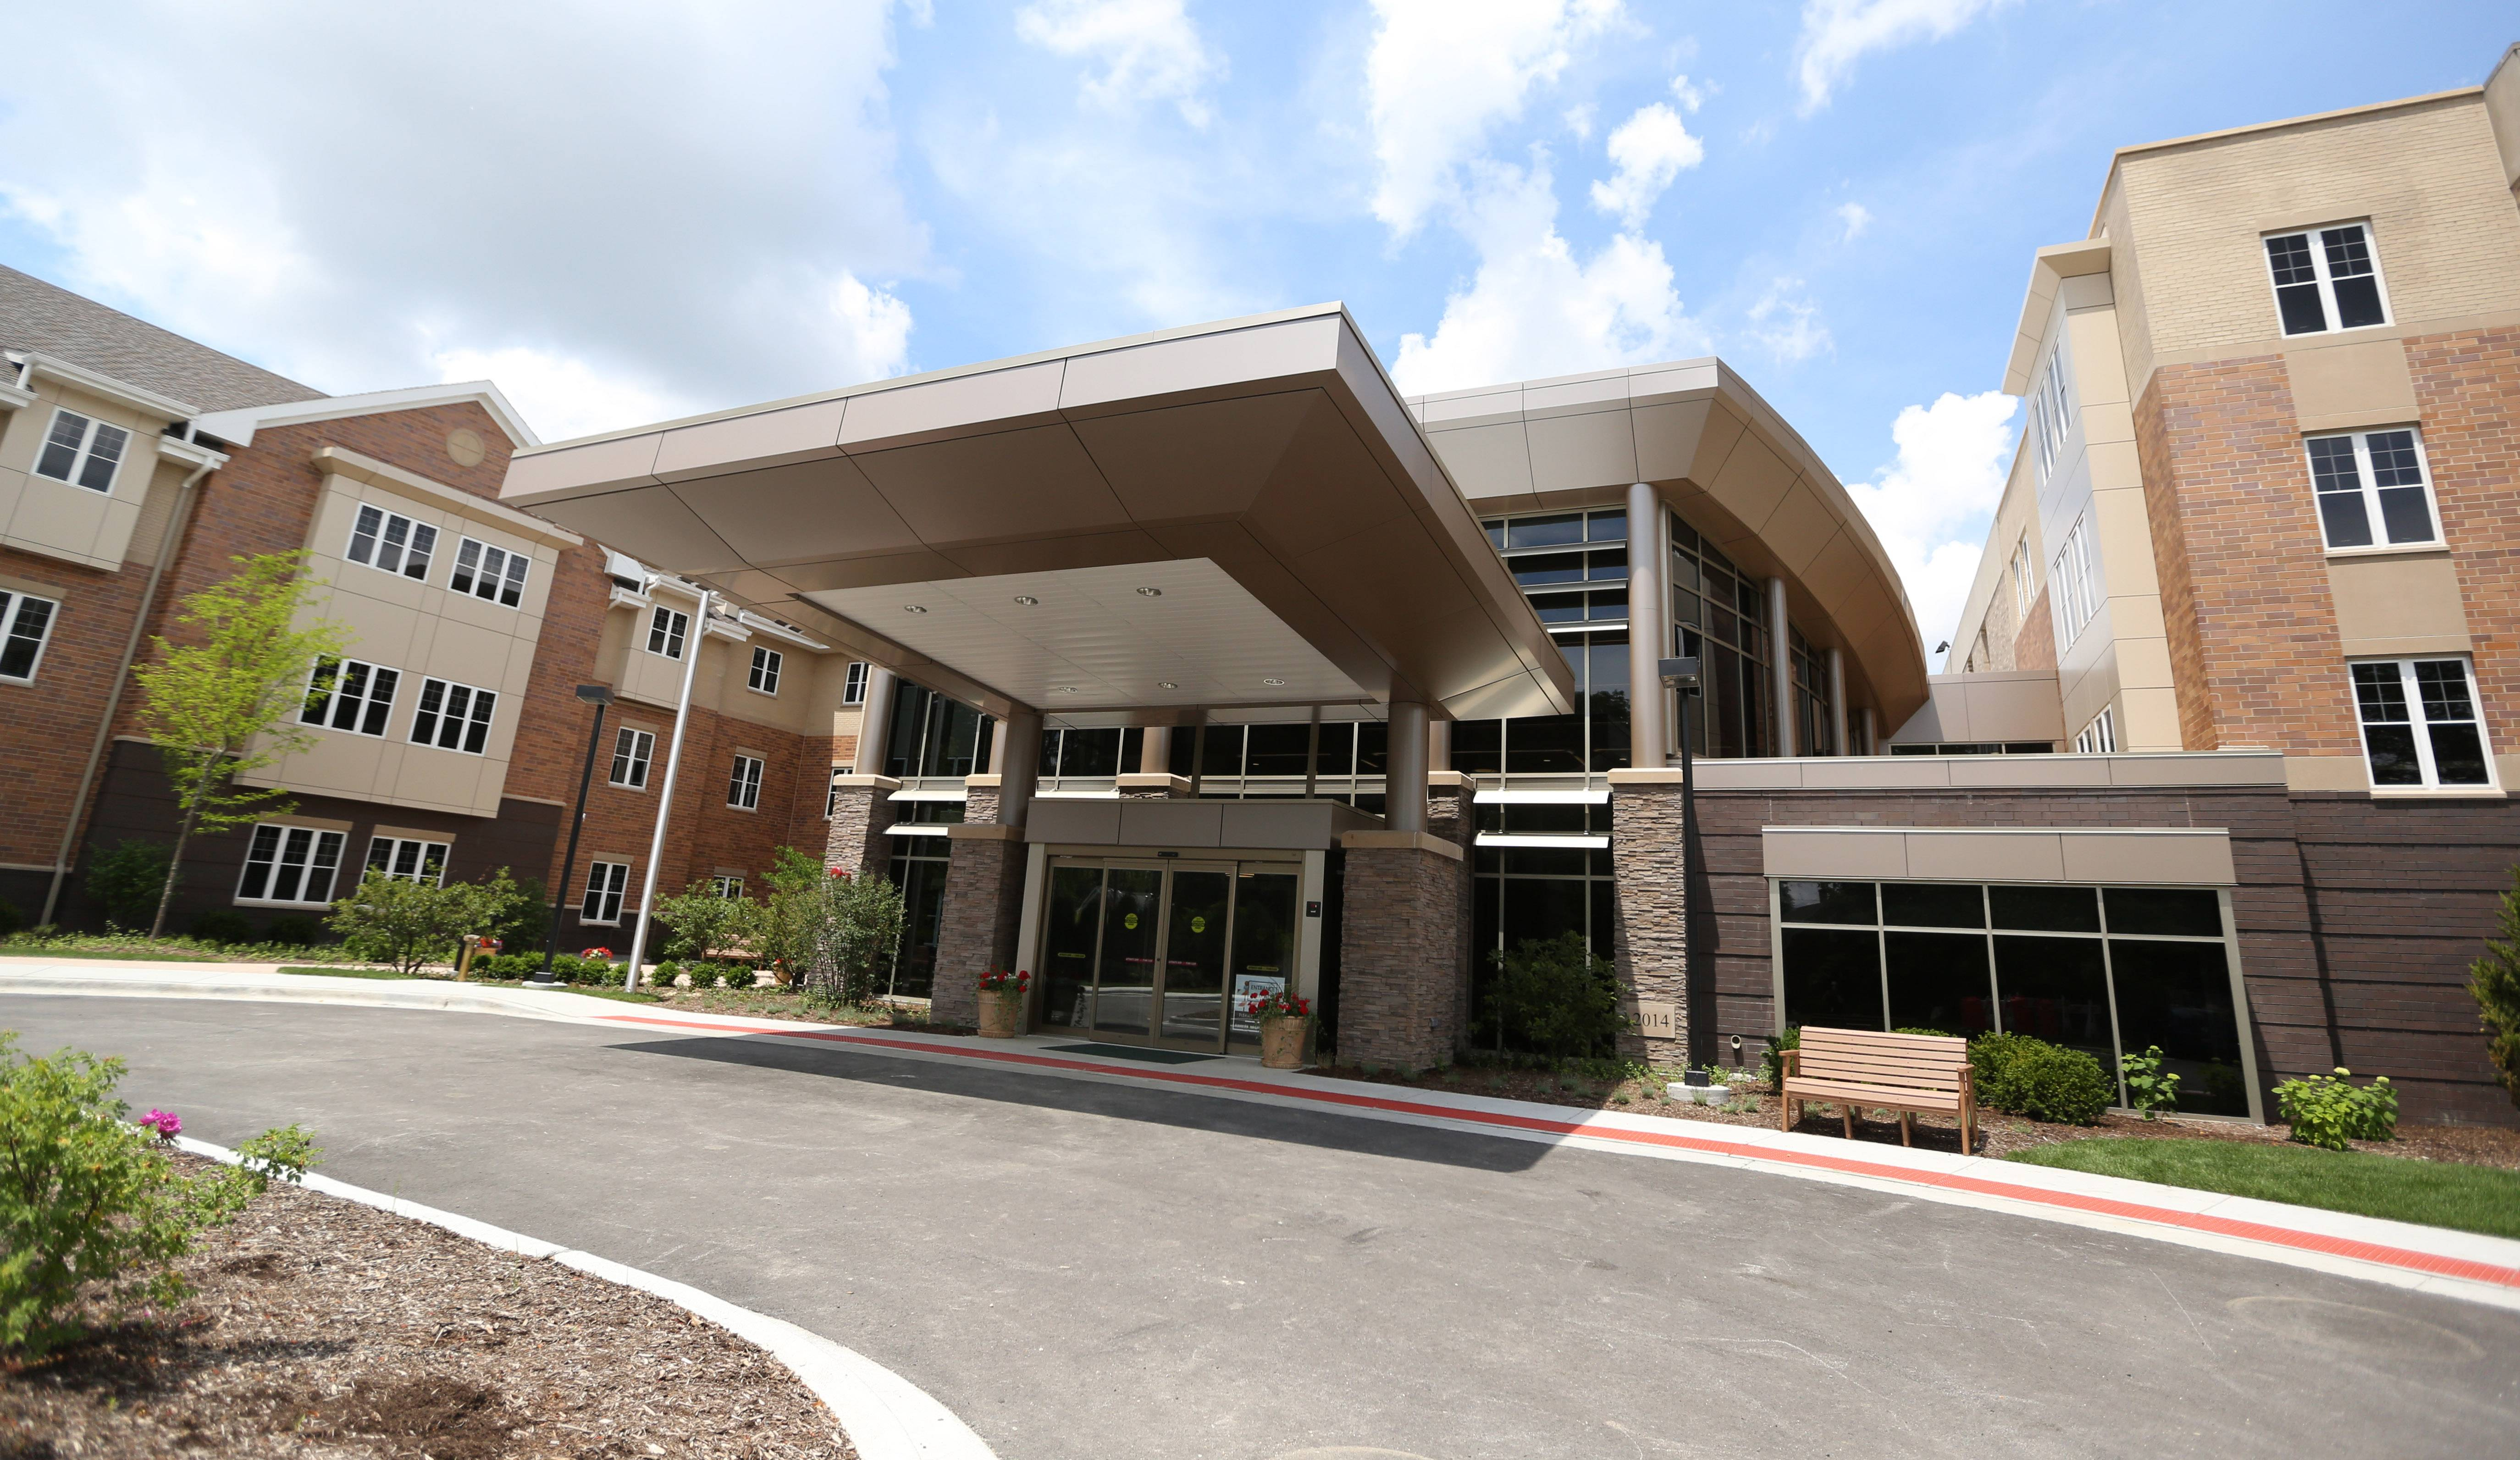 The Lutheran Home's new MyRehab Center opens Wednesday at the Arlington Heights facility. The center is the first of a three-part, $64 million project to modernize and renovate Lutheran Home.